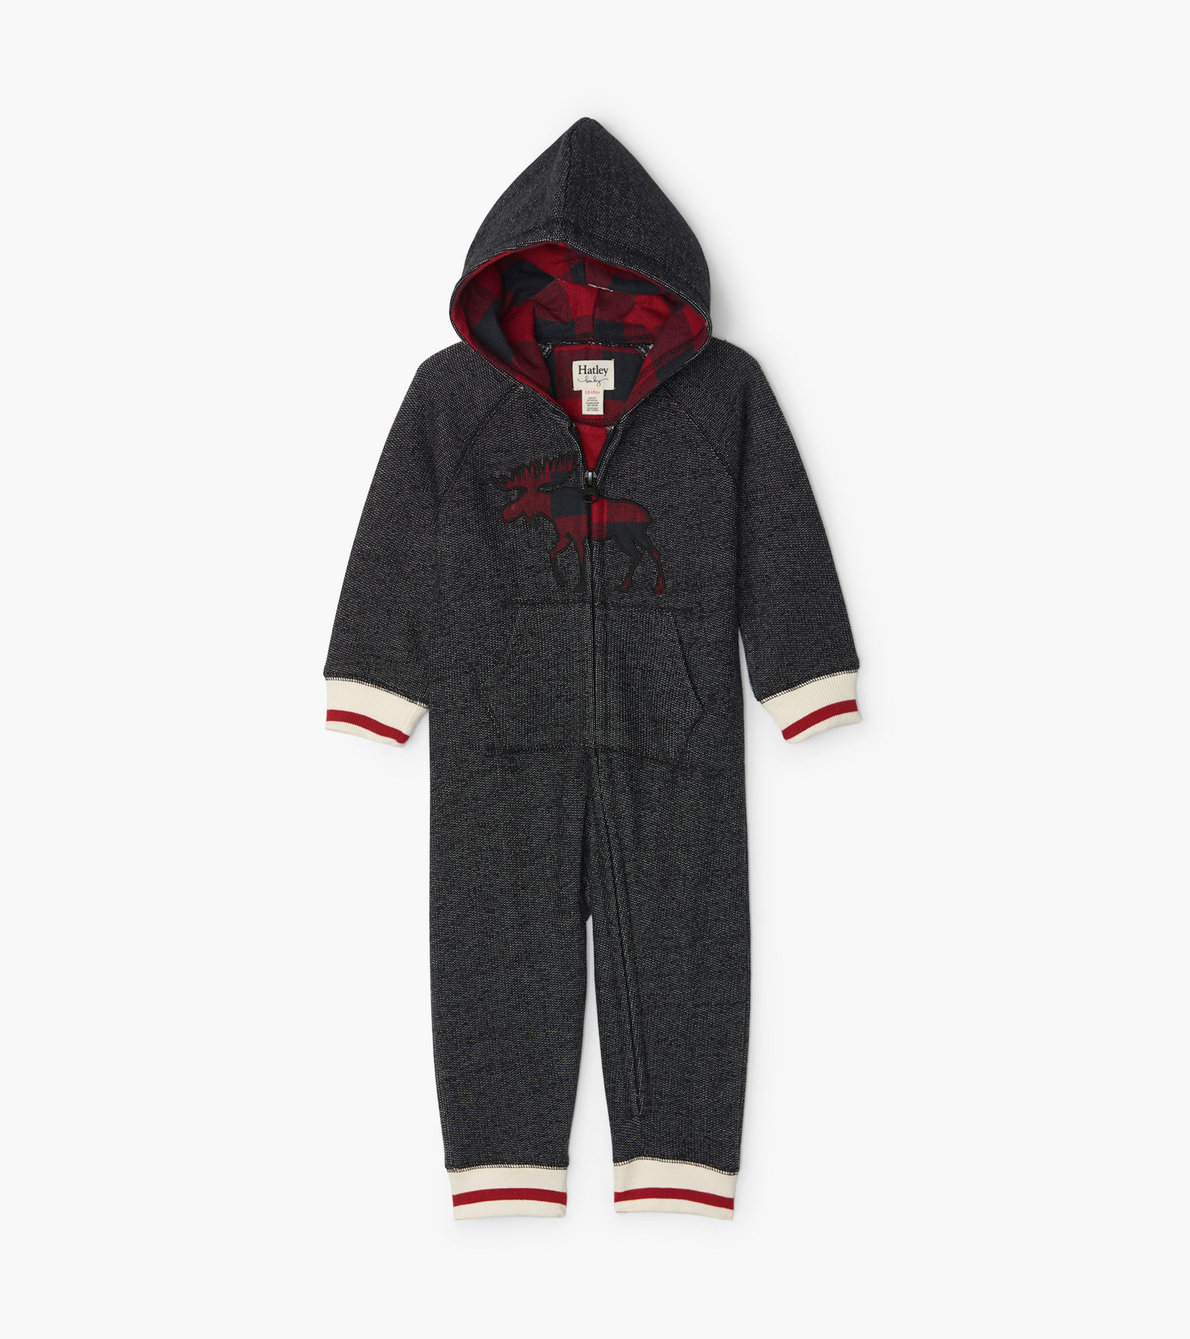 View larger image of Buffalo Plaid Moose Baby Heritage Full Zip Romper